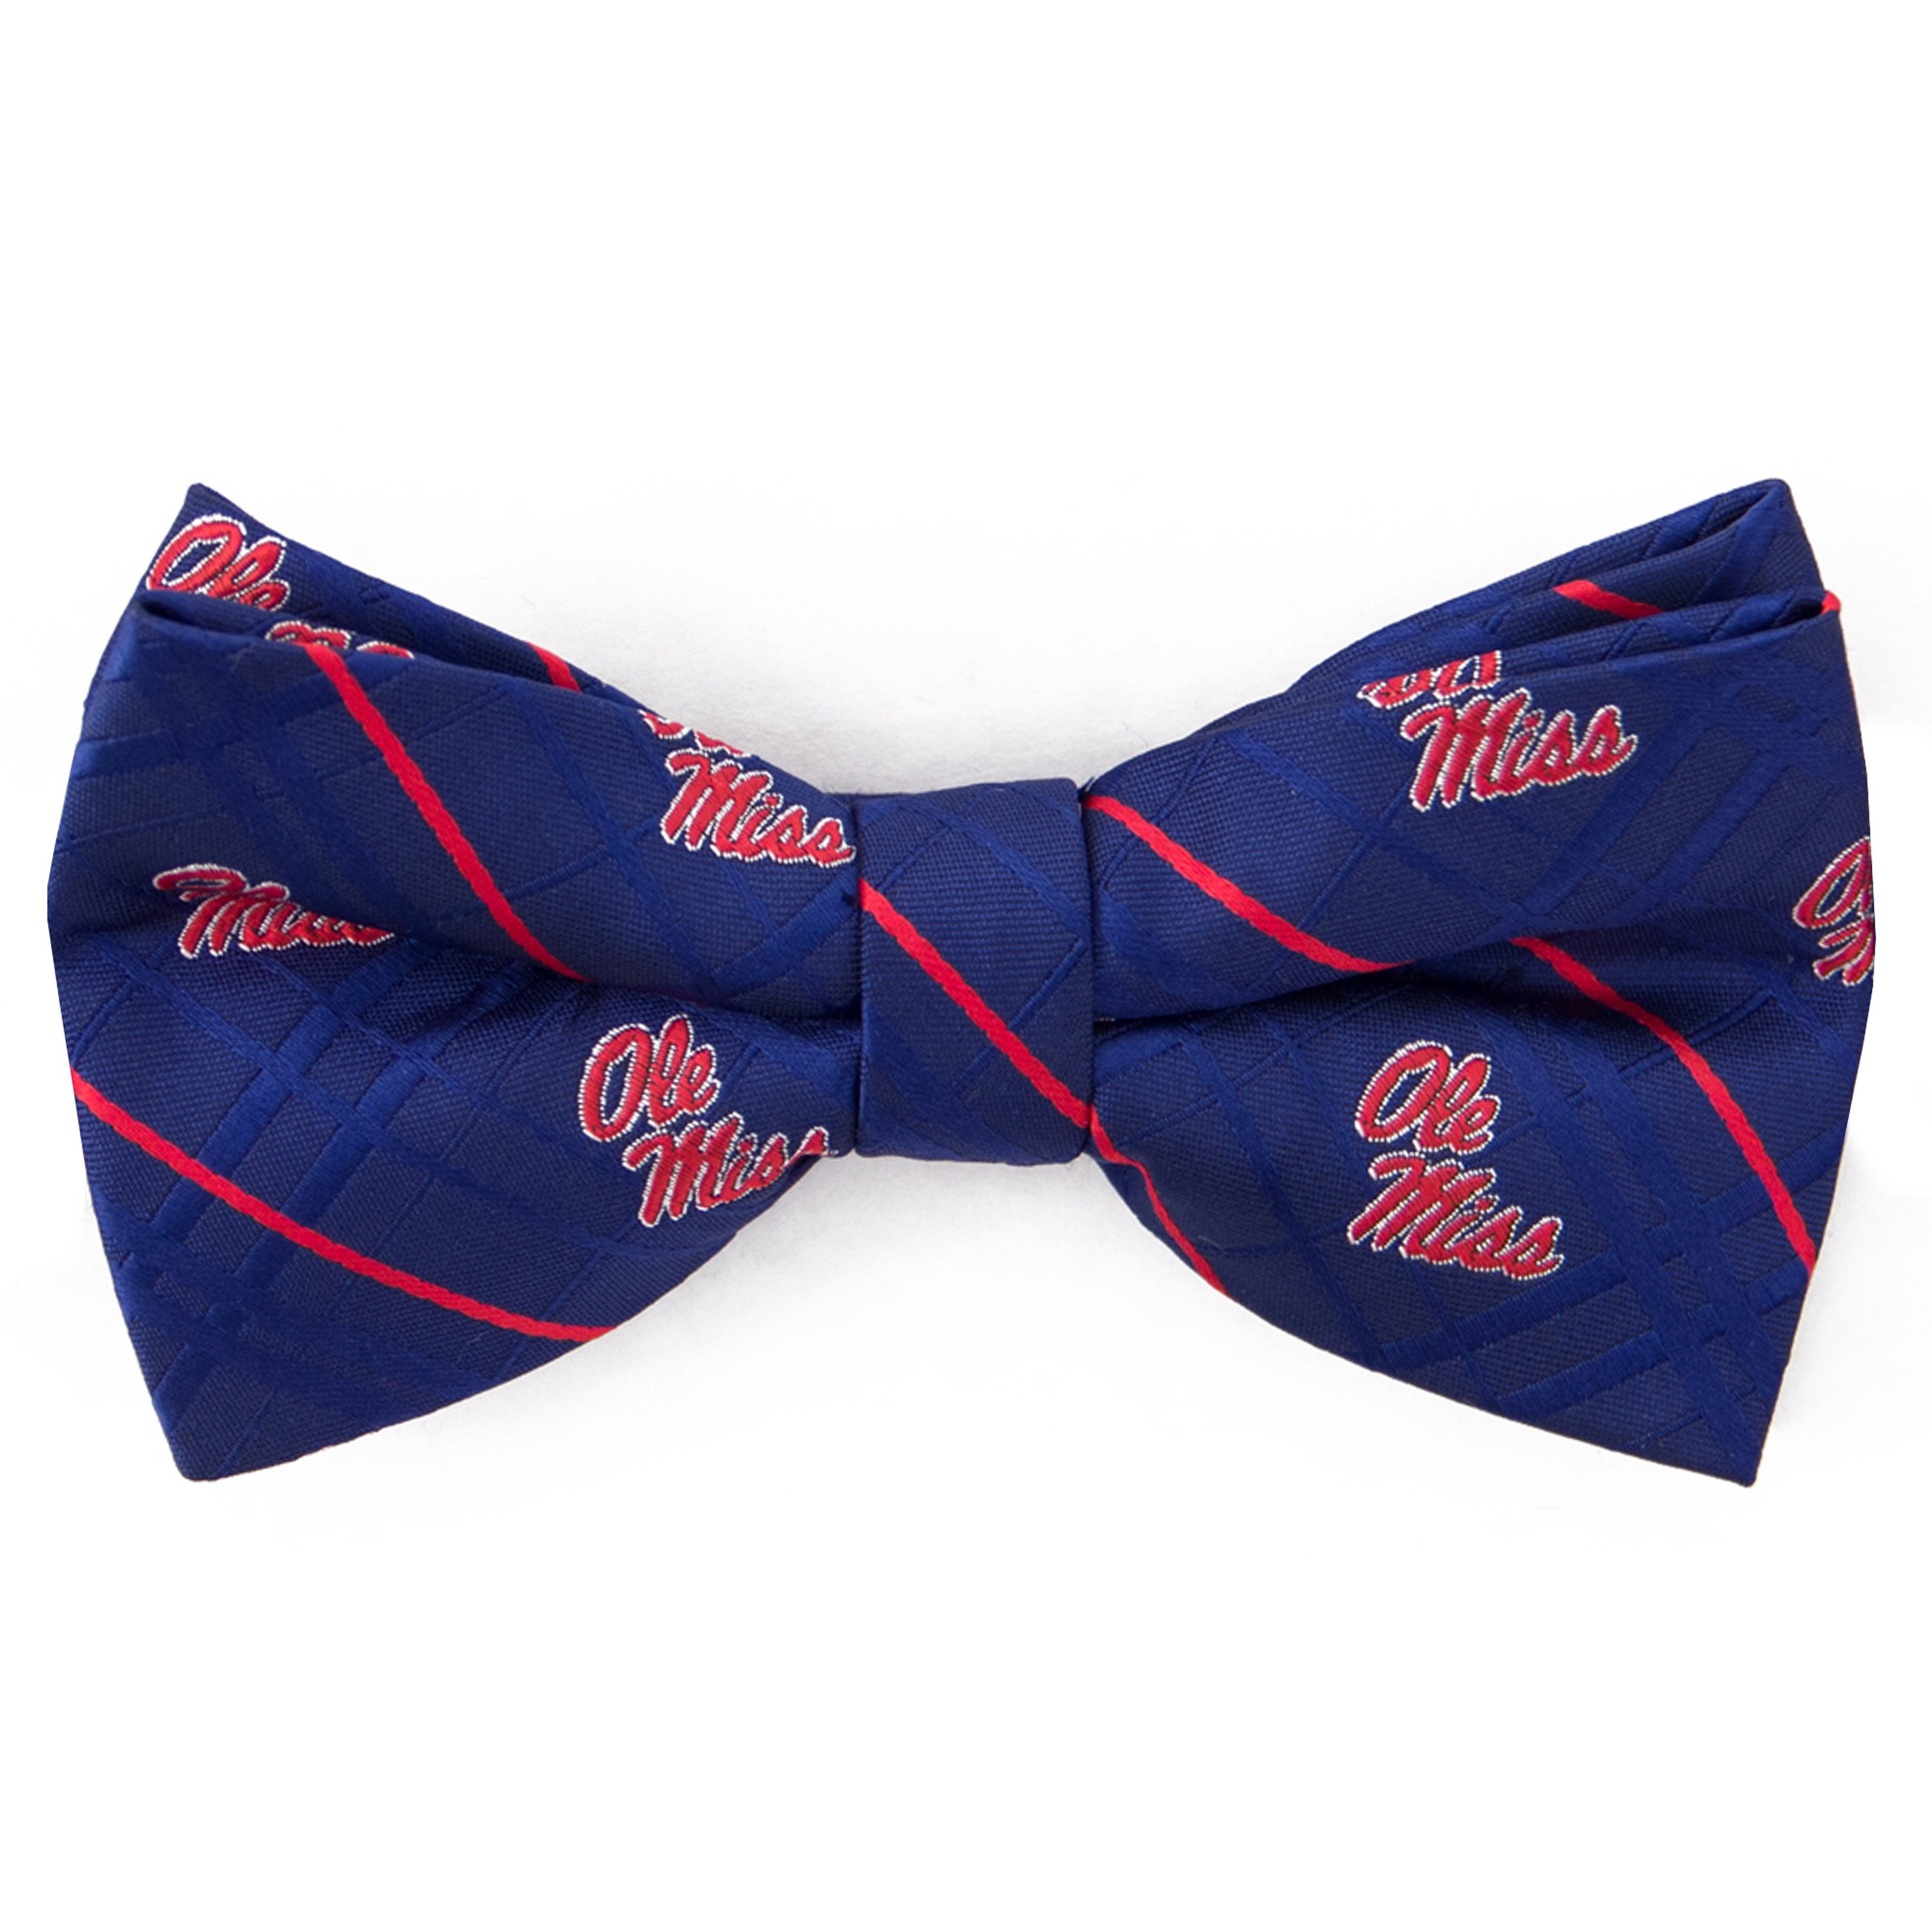 Ole Miss Bow Tie - Oxford